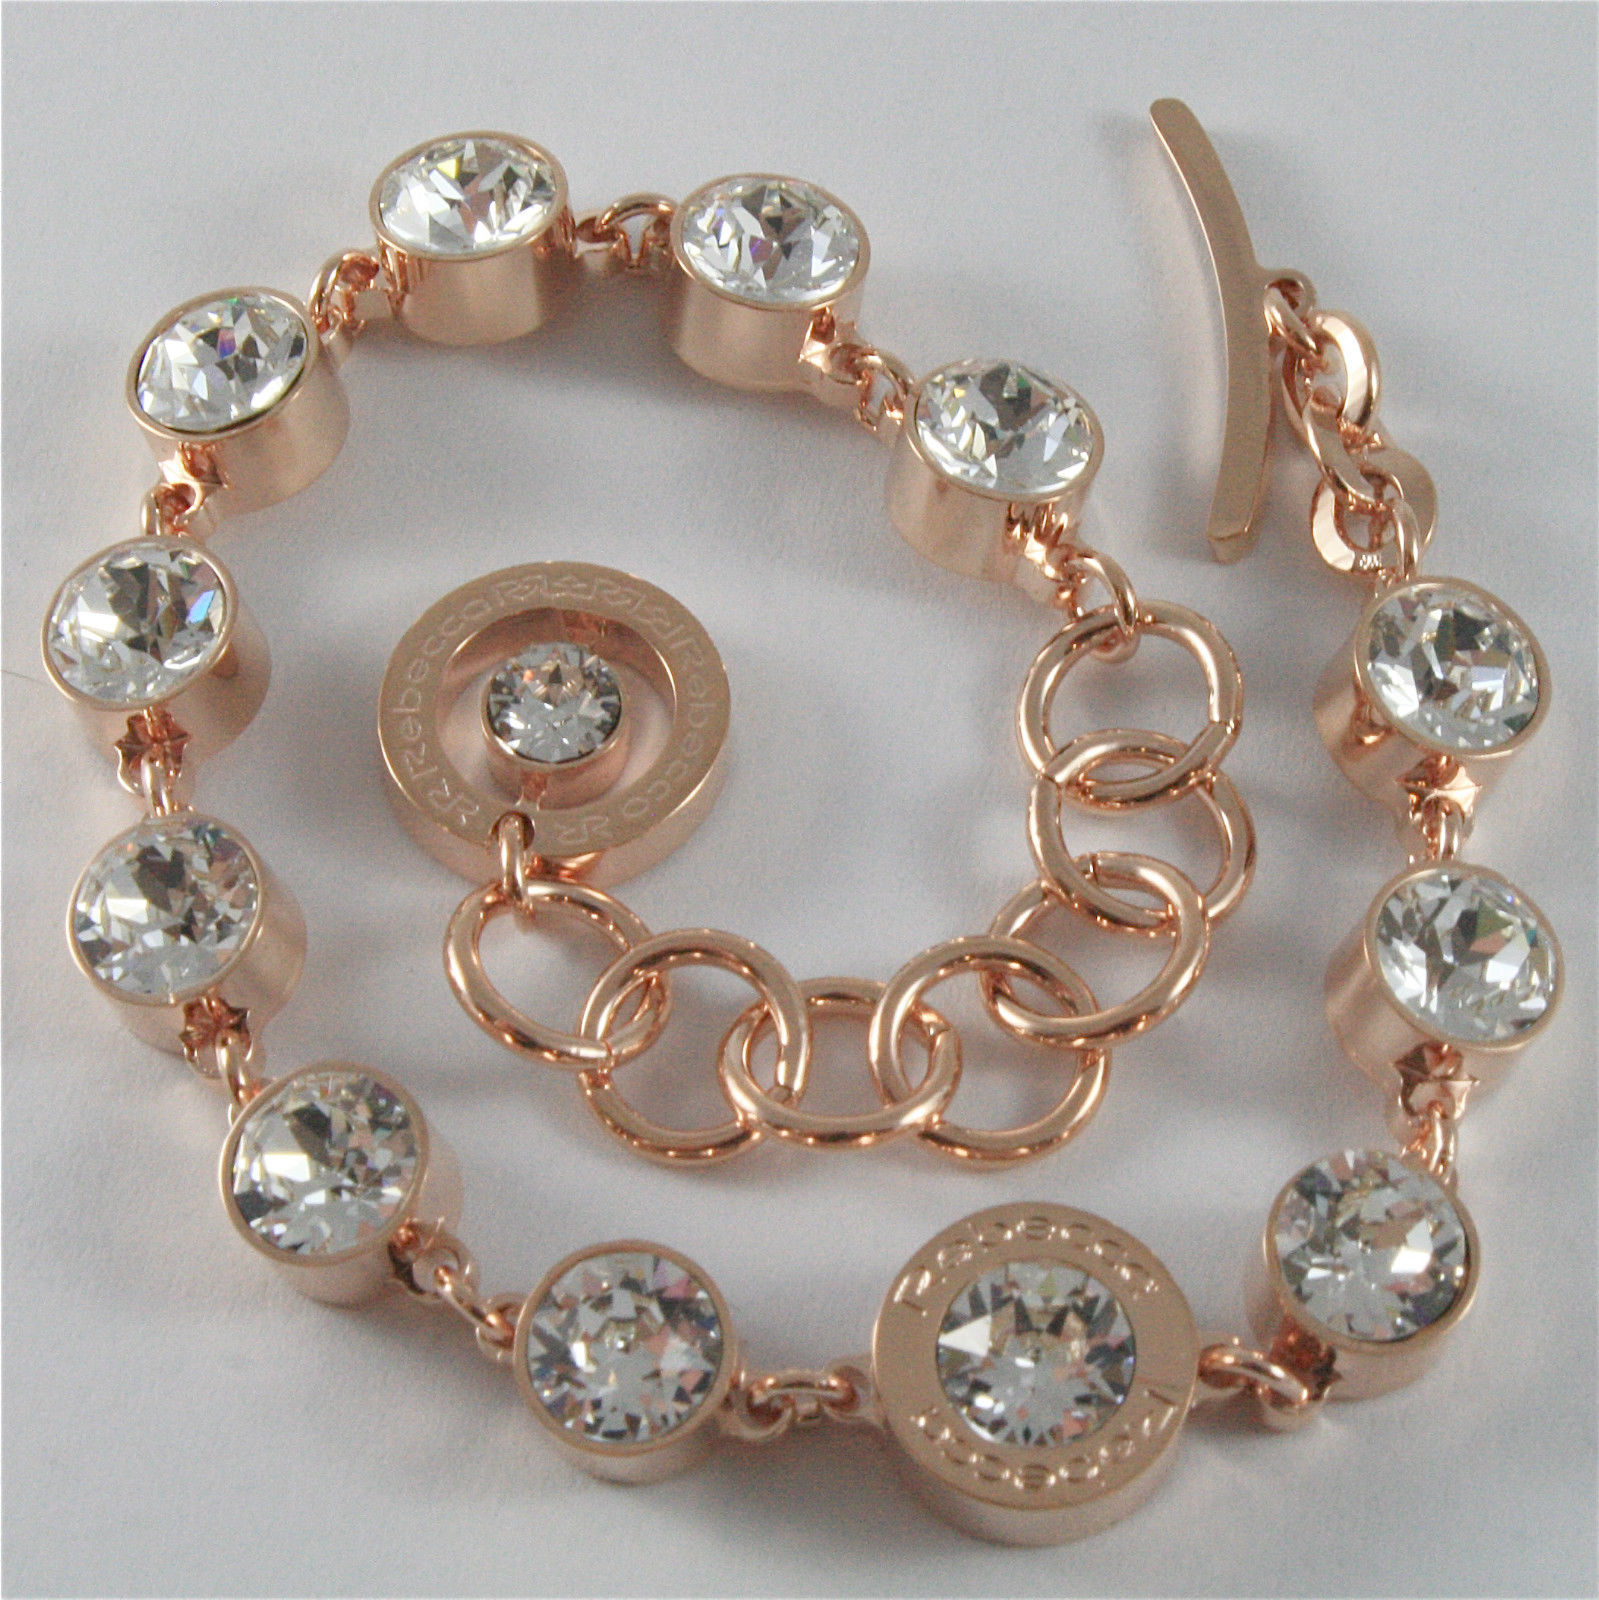 ROSE GOLD PLATED BRONZE REBECCA TENNIS BRACELET BPBBRB33 MADE IN ITALY 7.48 IN